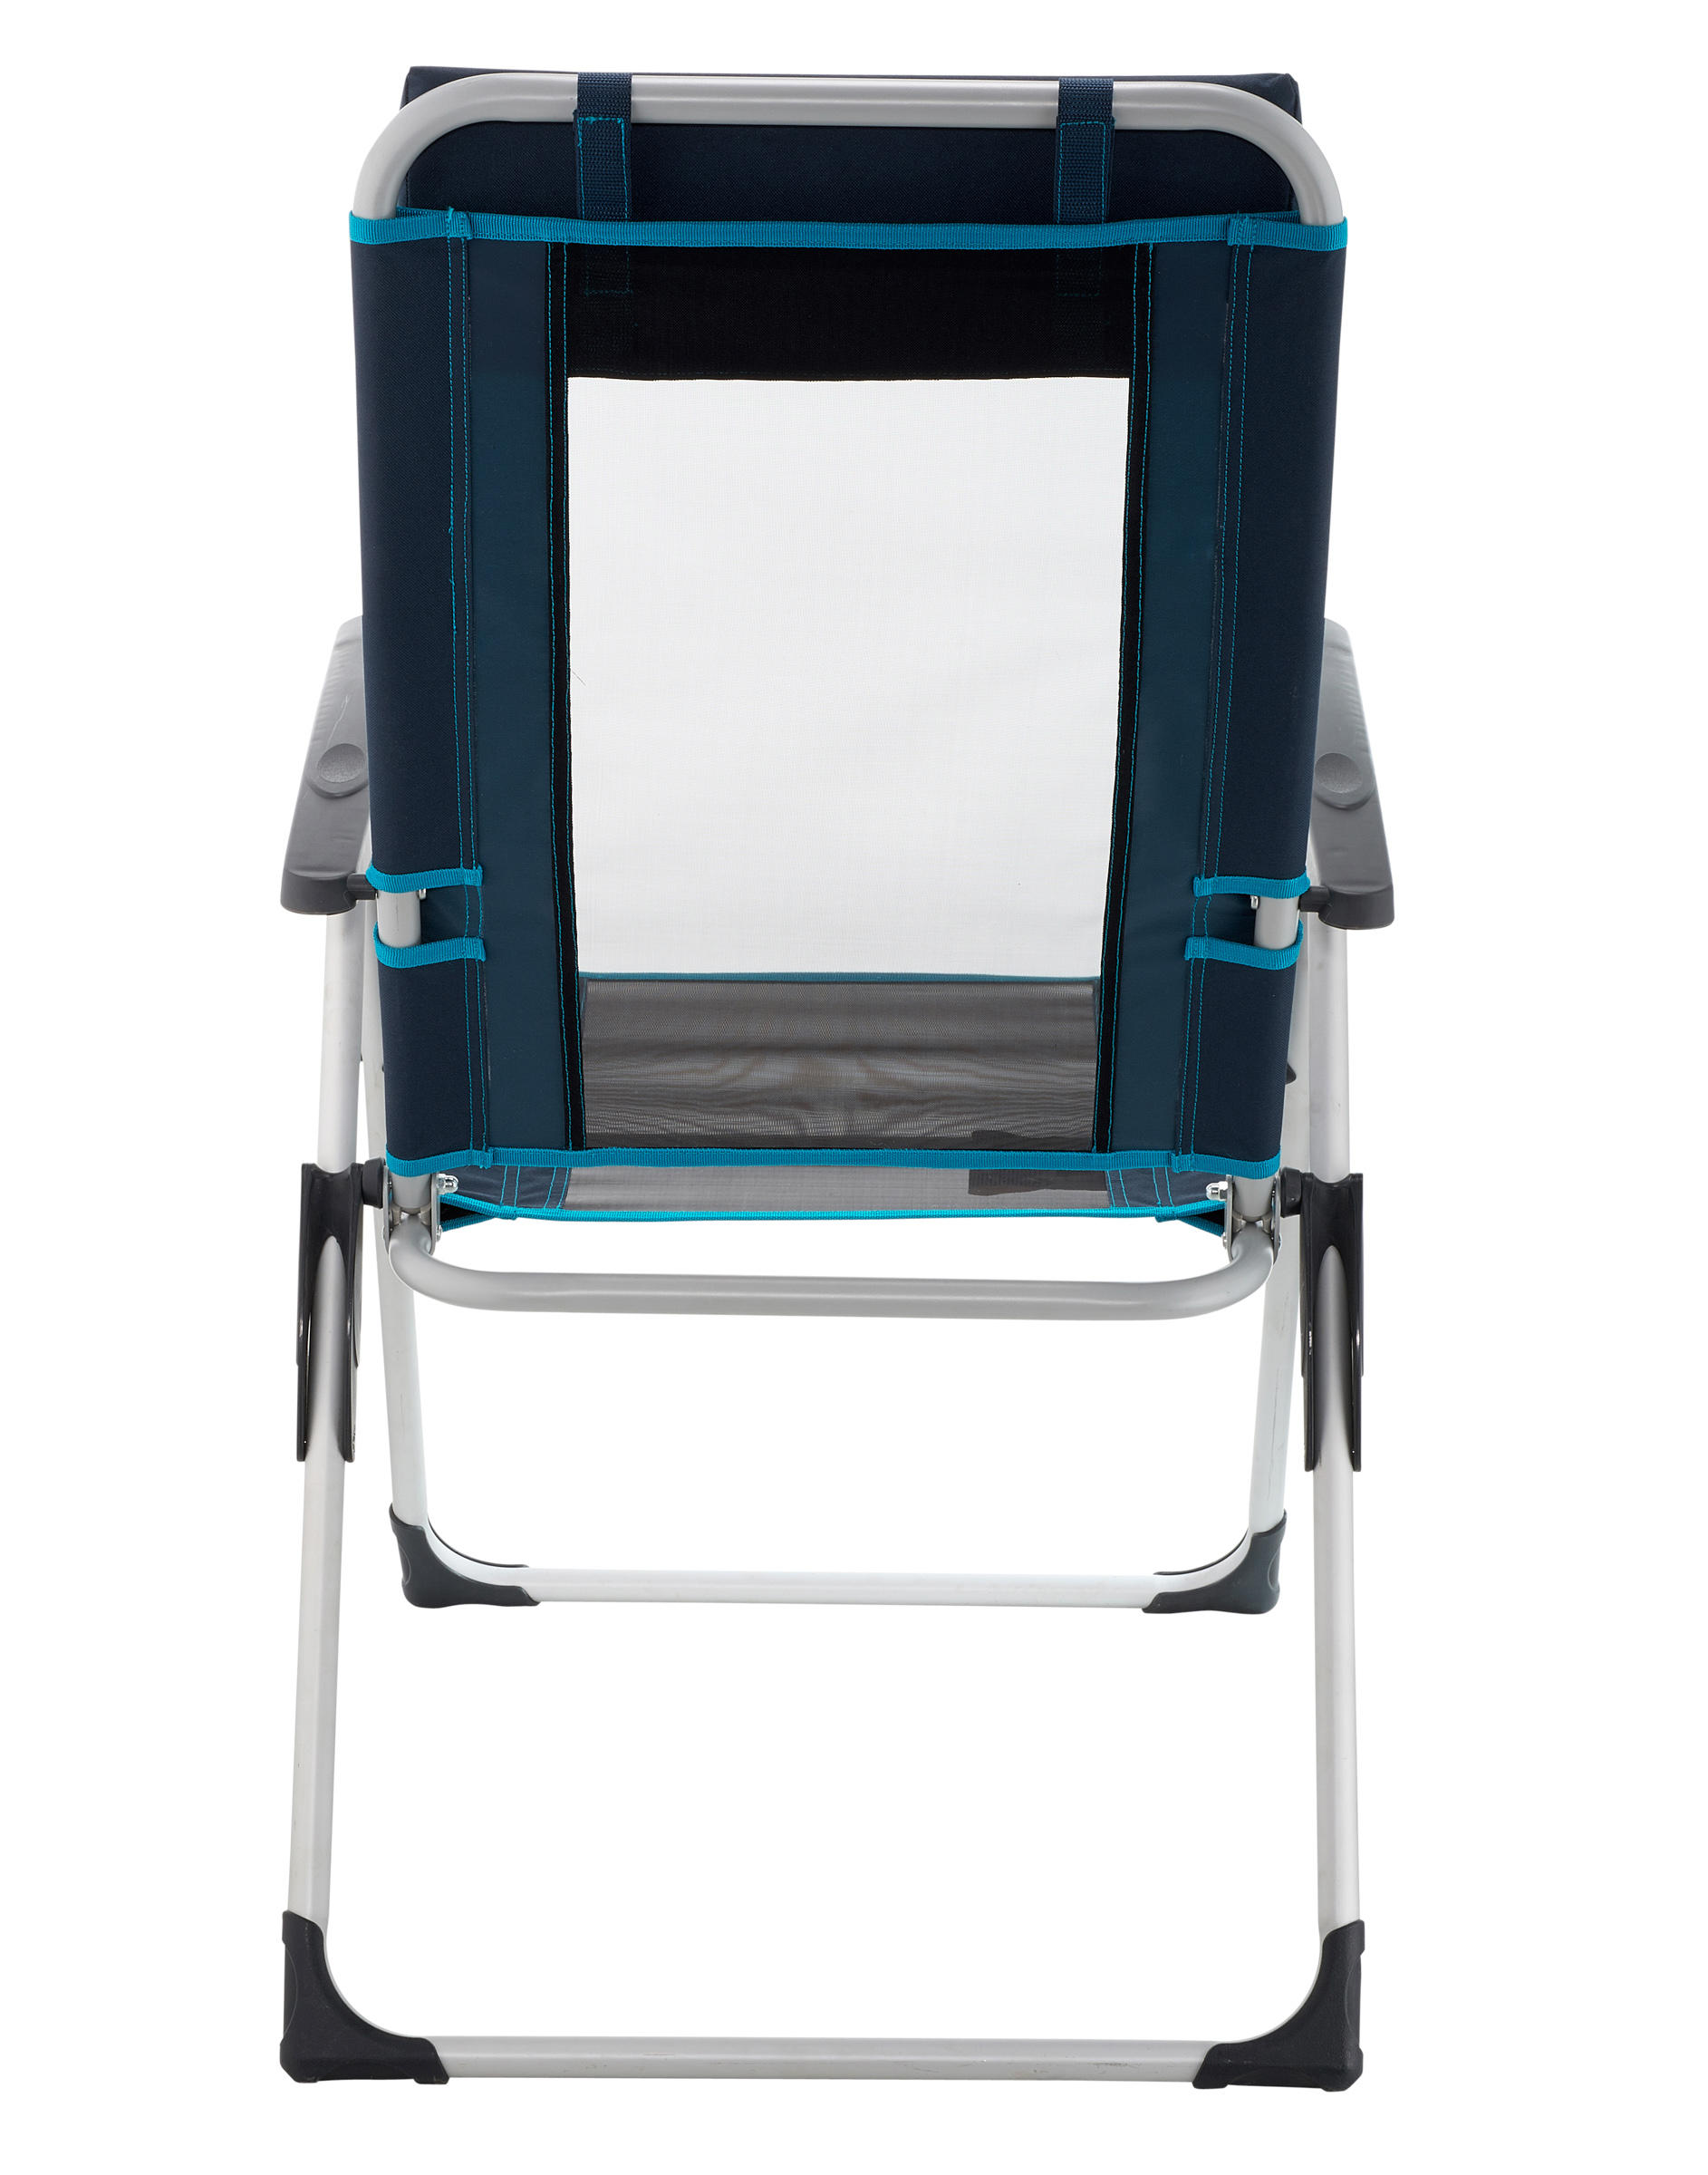 Comfortable Reclining Chair For Camping Blue